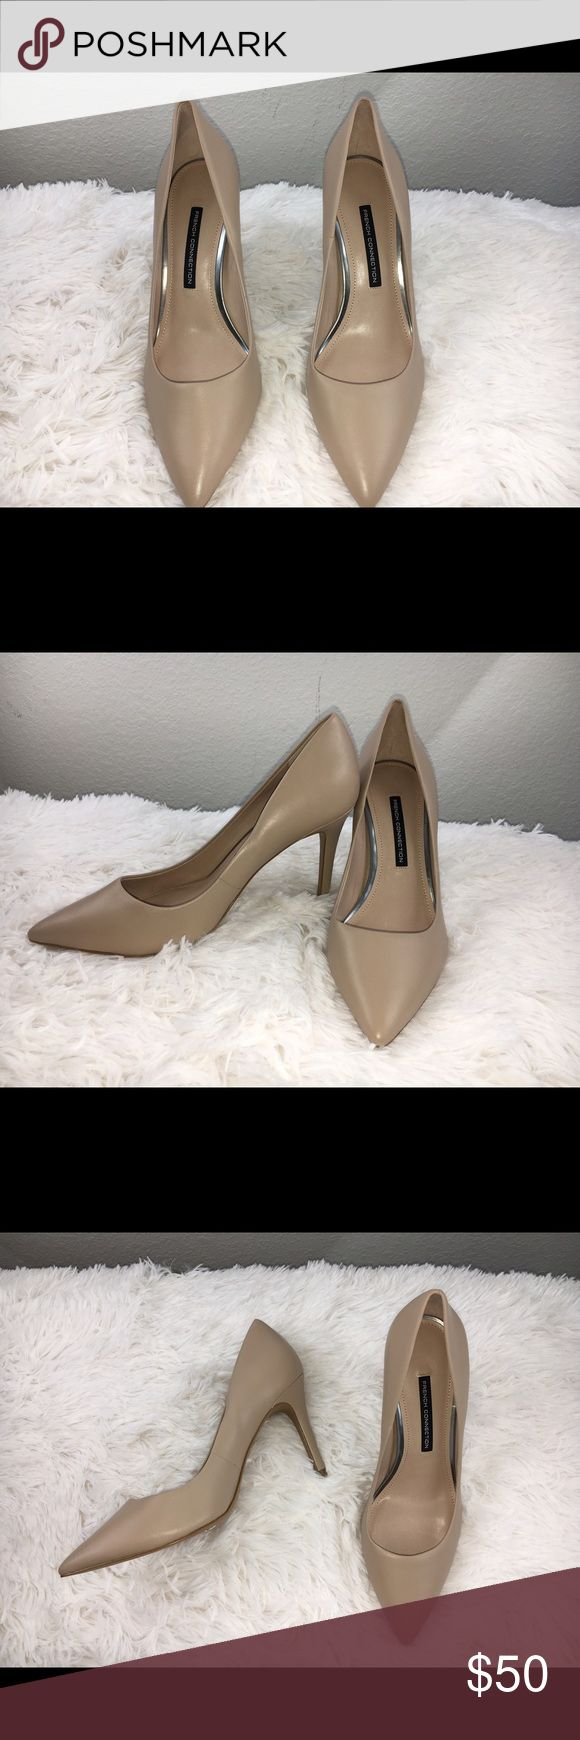 New French Connection Nude Heels New French Connection Nude Leather Heels, never worn French Connection Shoes Heels